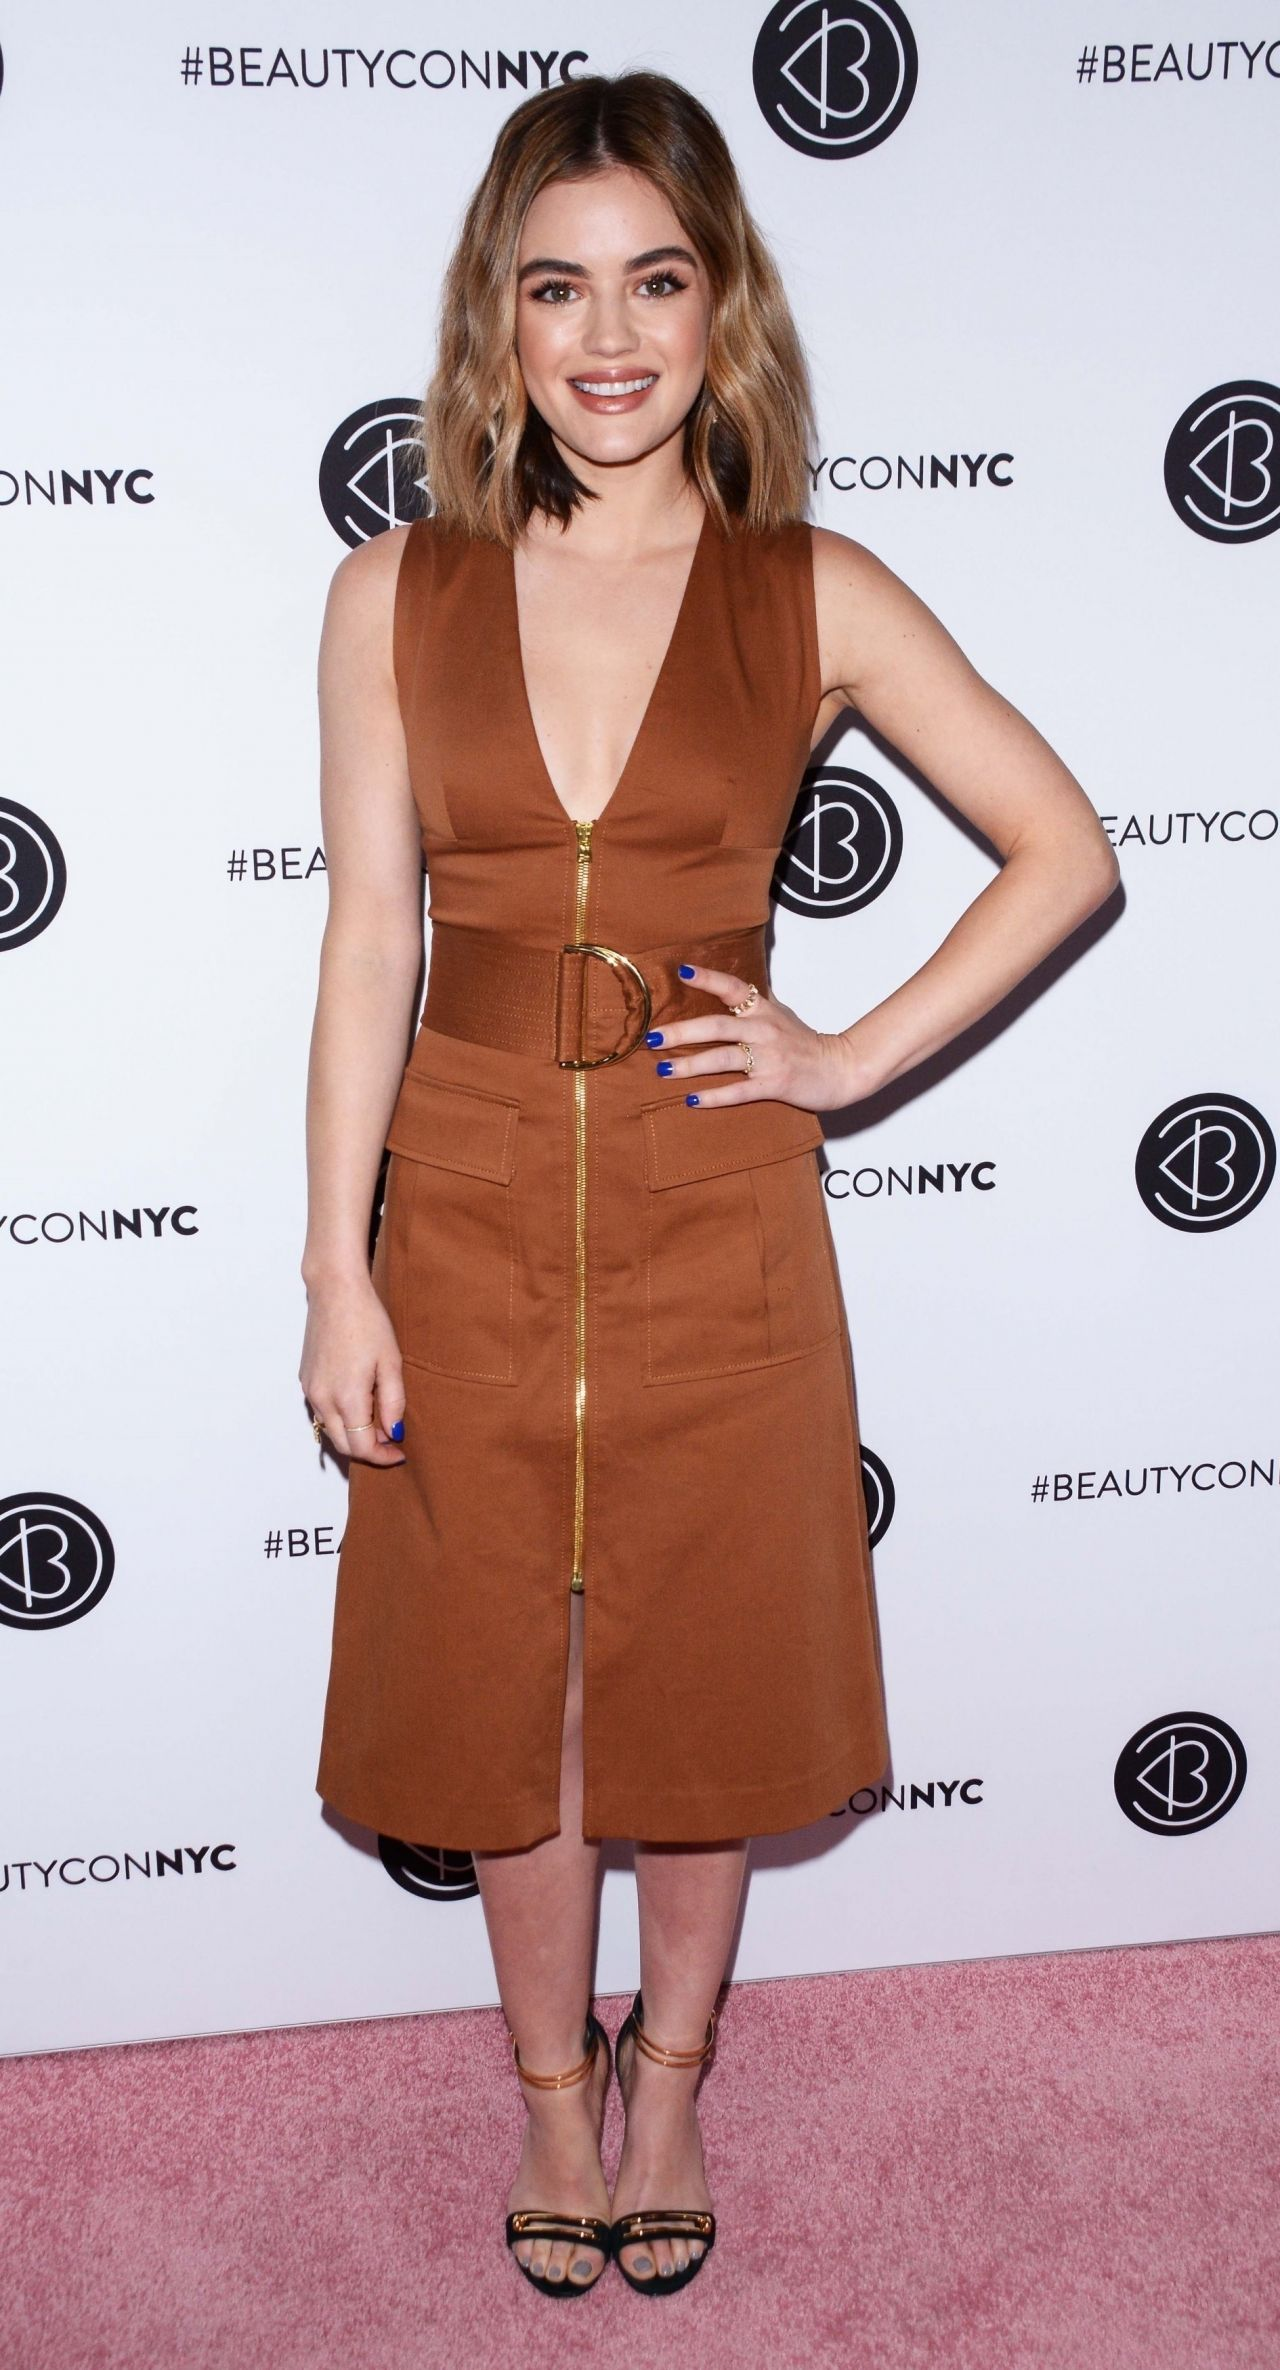 Lucy Hale Beautycon Festival In Nyc 04 21 2018